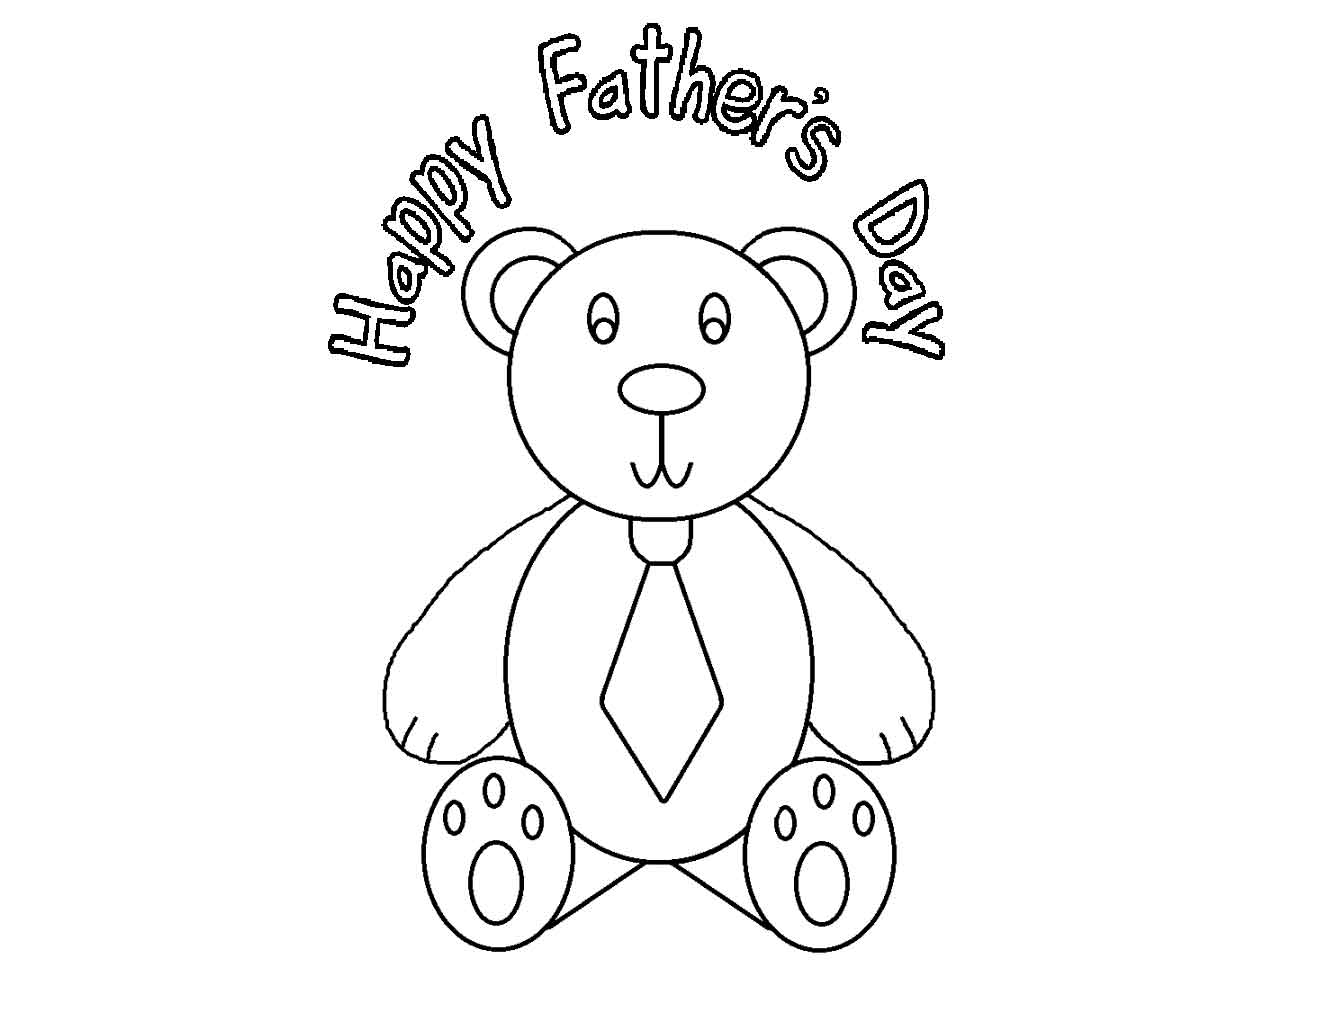 Happy Father's Day Card coloring page | Free Printable Coloring Pages | 1020x1320